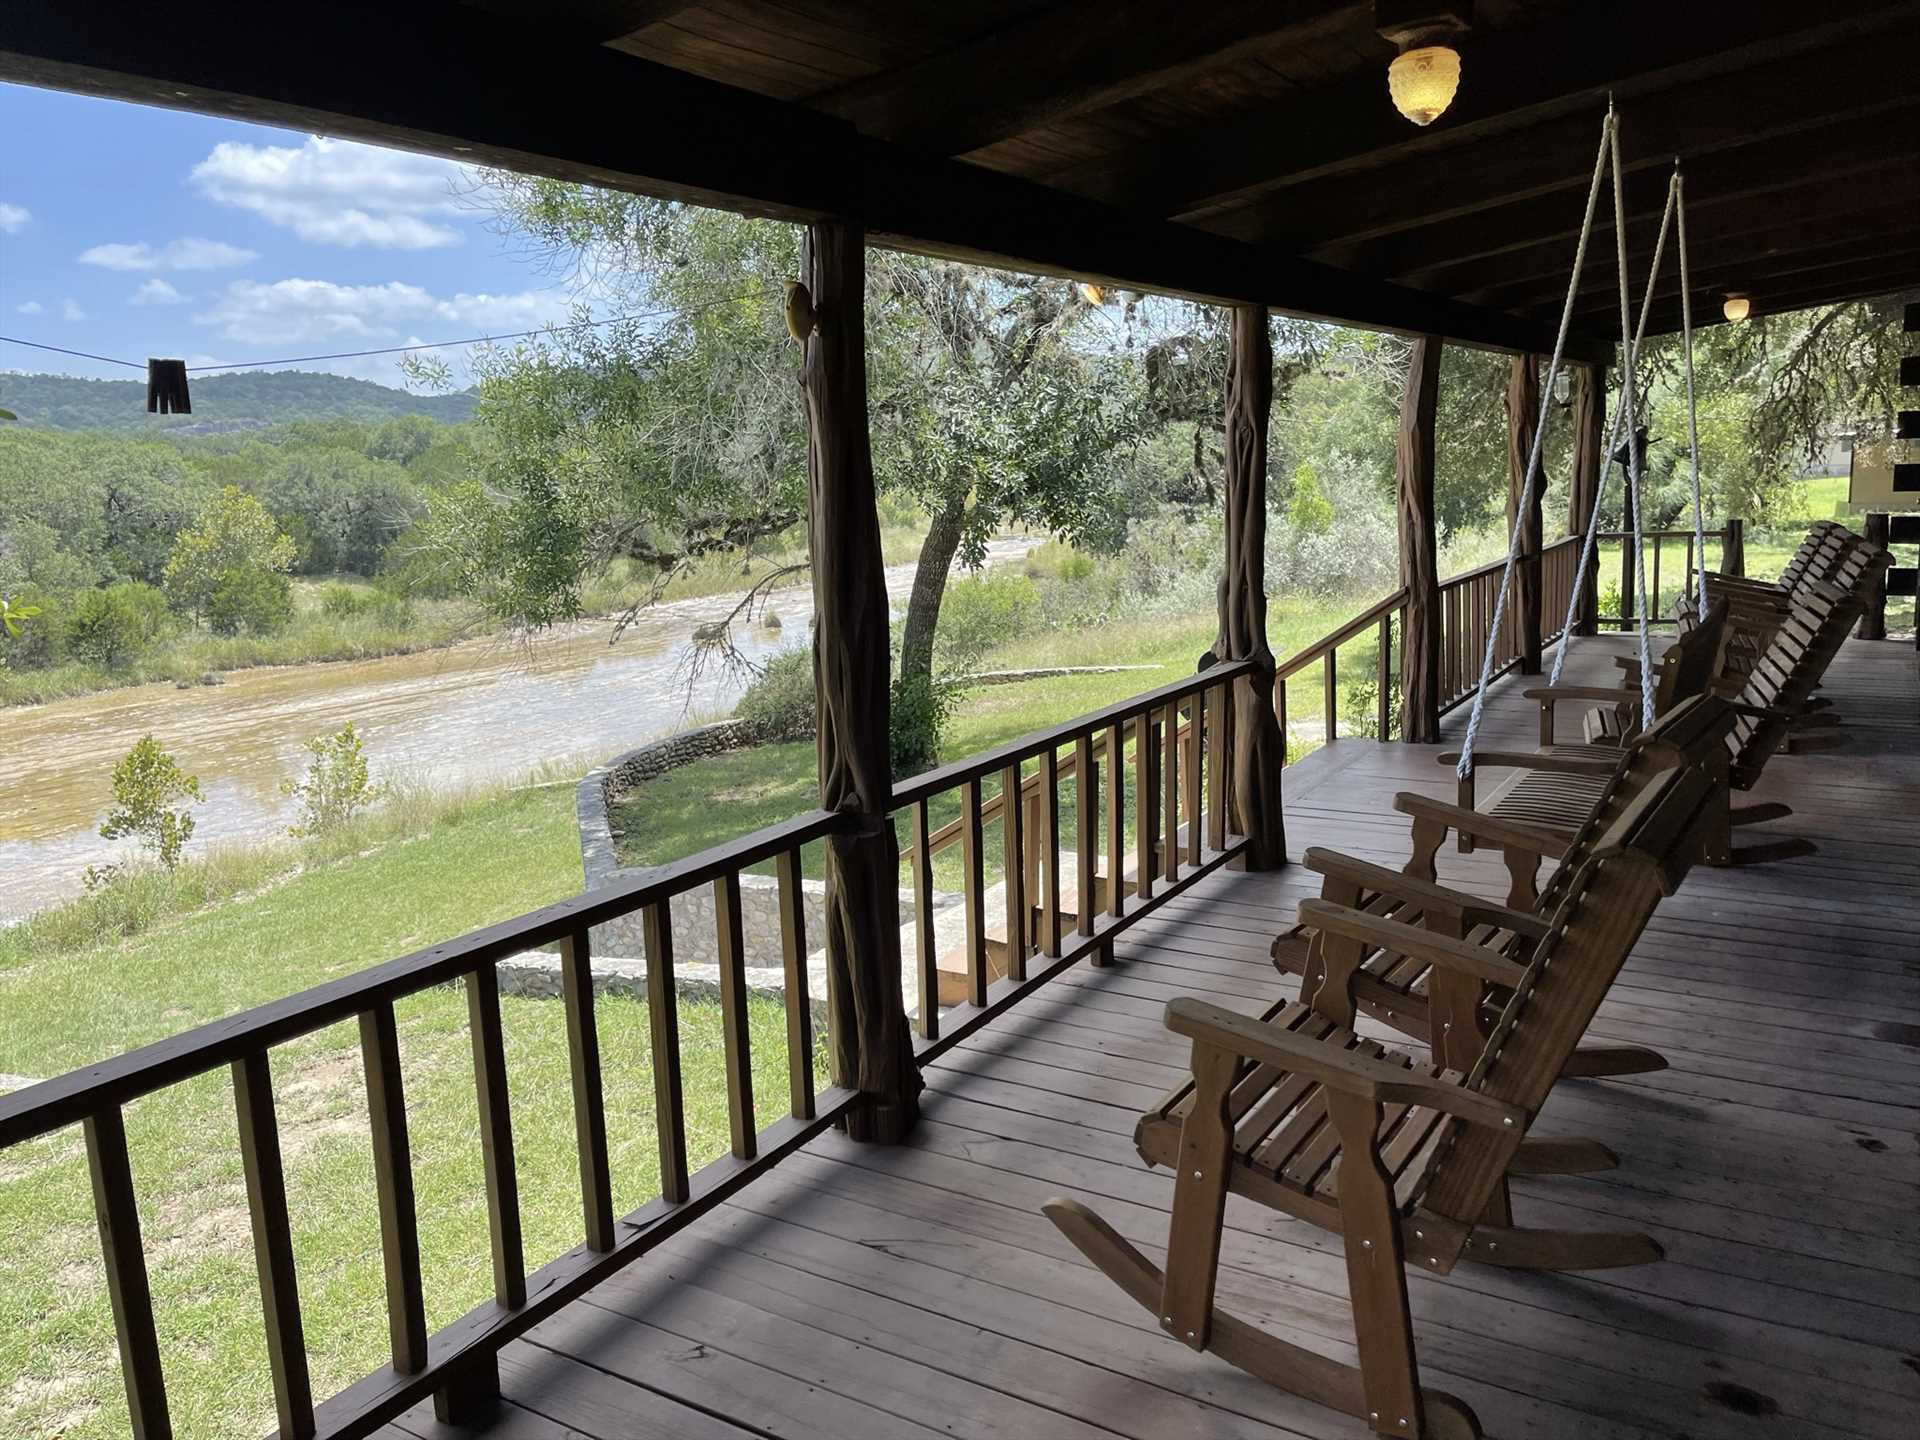 Rock away a peaceful moment on the cool and comfy deck. The views here of the swimming hole, and the majestic mountains of the Hill Country, are beyond compare!